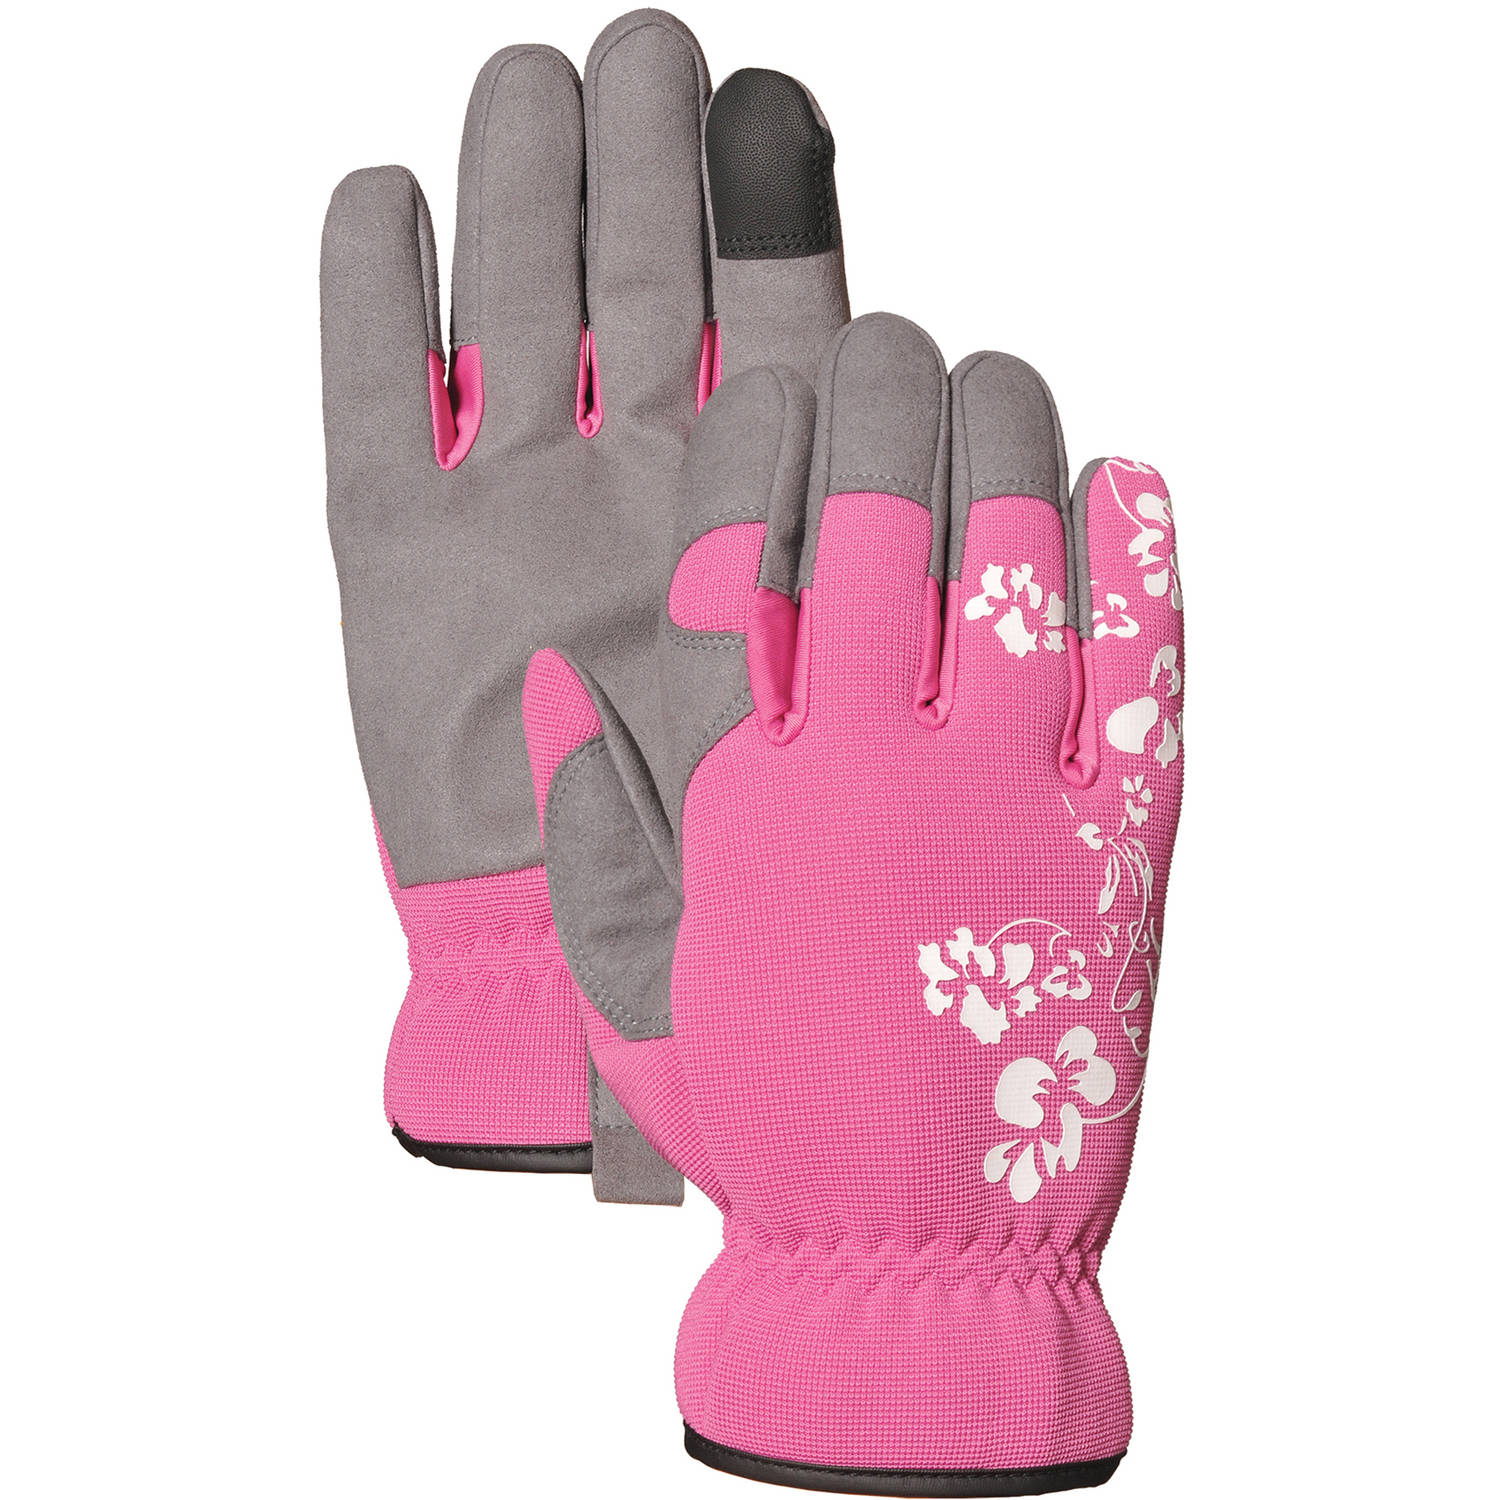 Bellingham Glove C7333S Small Floral Women's Performance Glove